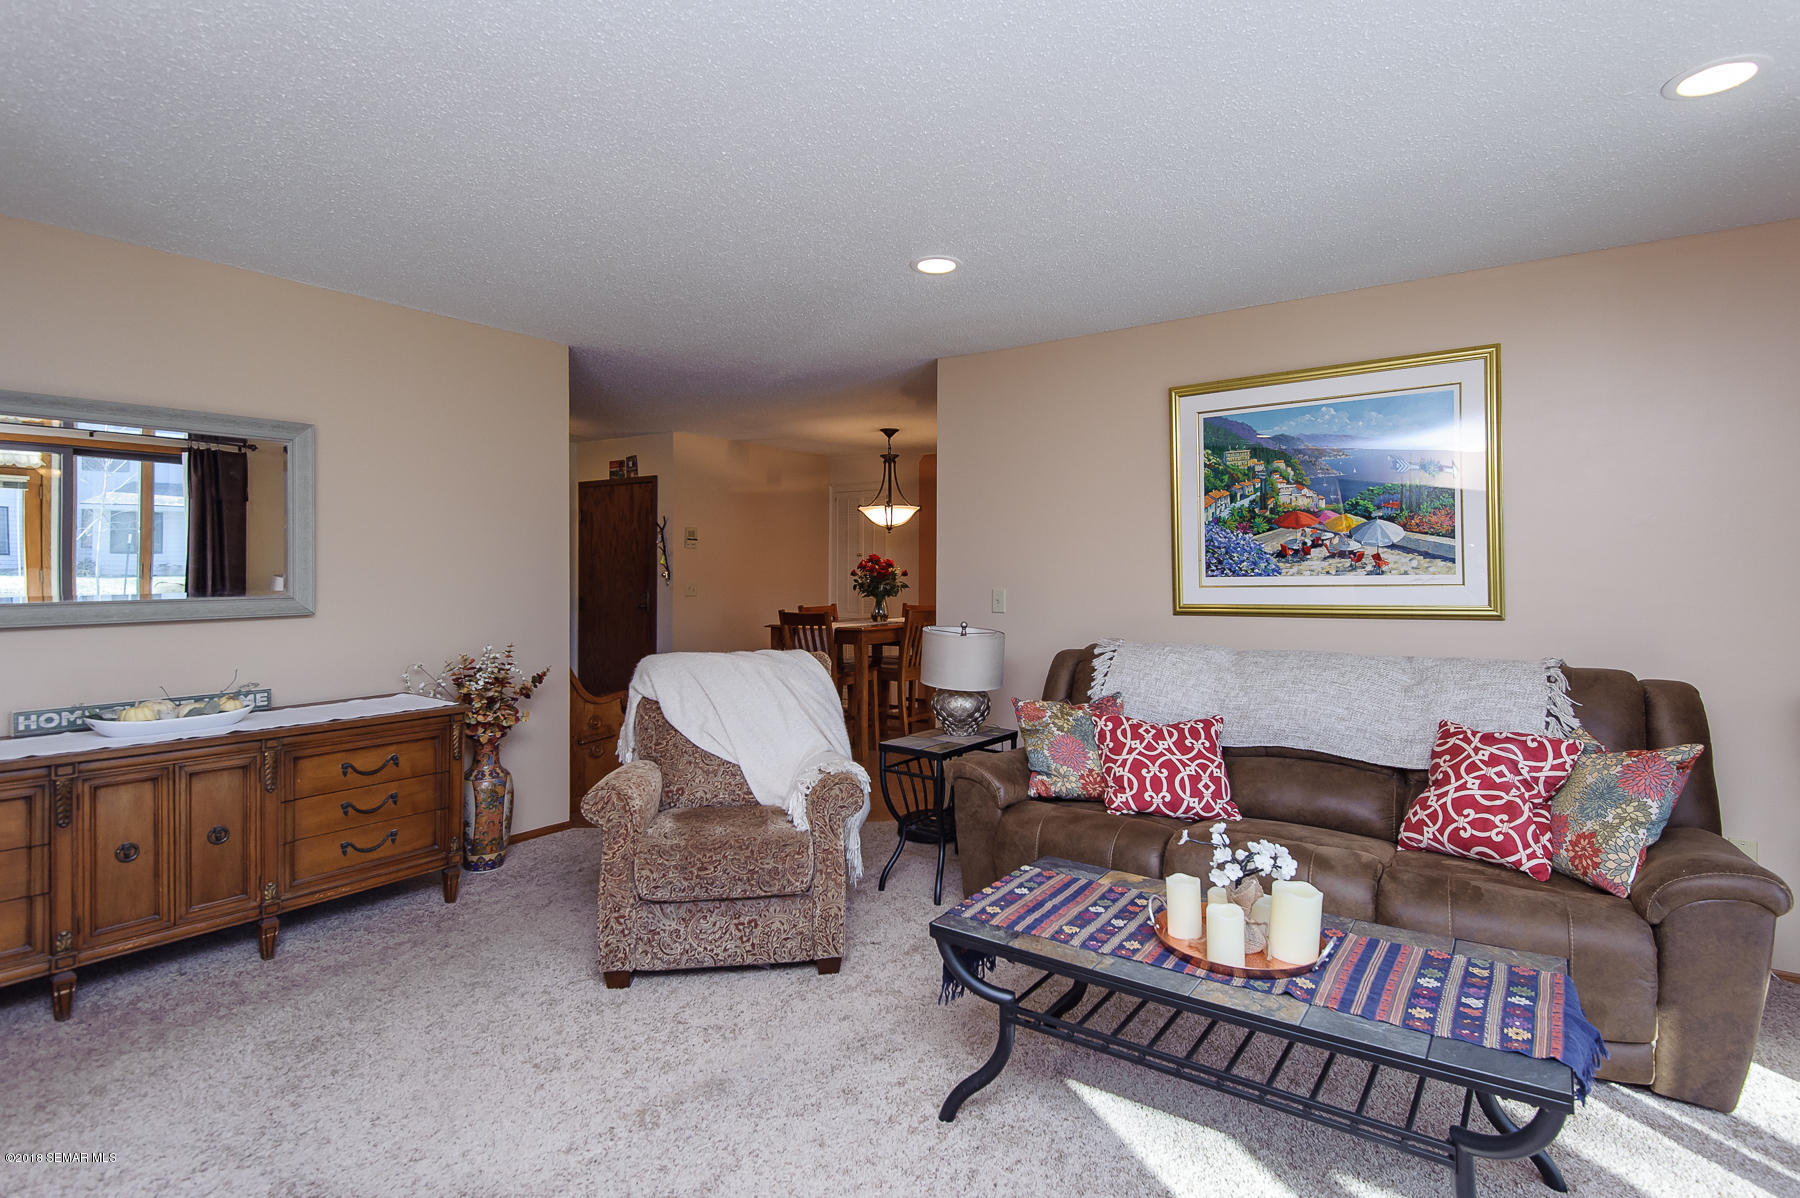 1800 Lakeview,Rochester,Minnesota 55902,2 Bedrooms Bedrooms,2 BathroomsBathrooms,Condominium,Lakeview,4092408